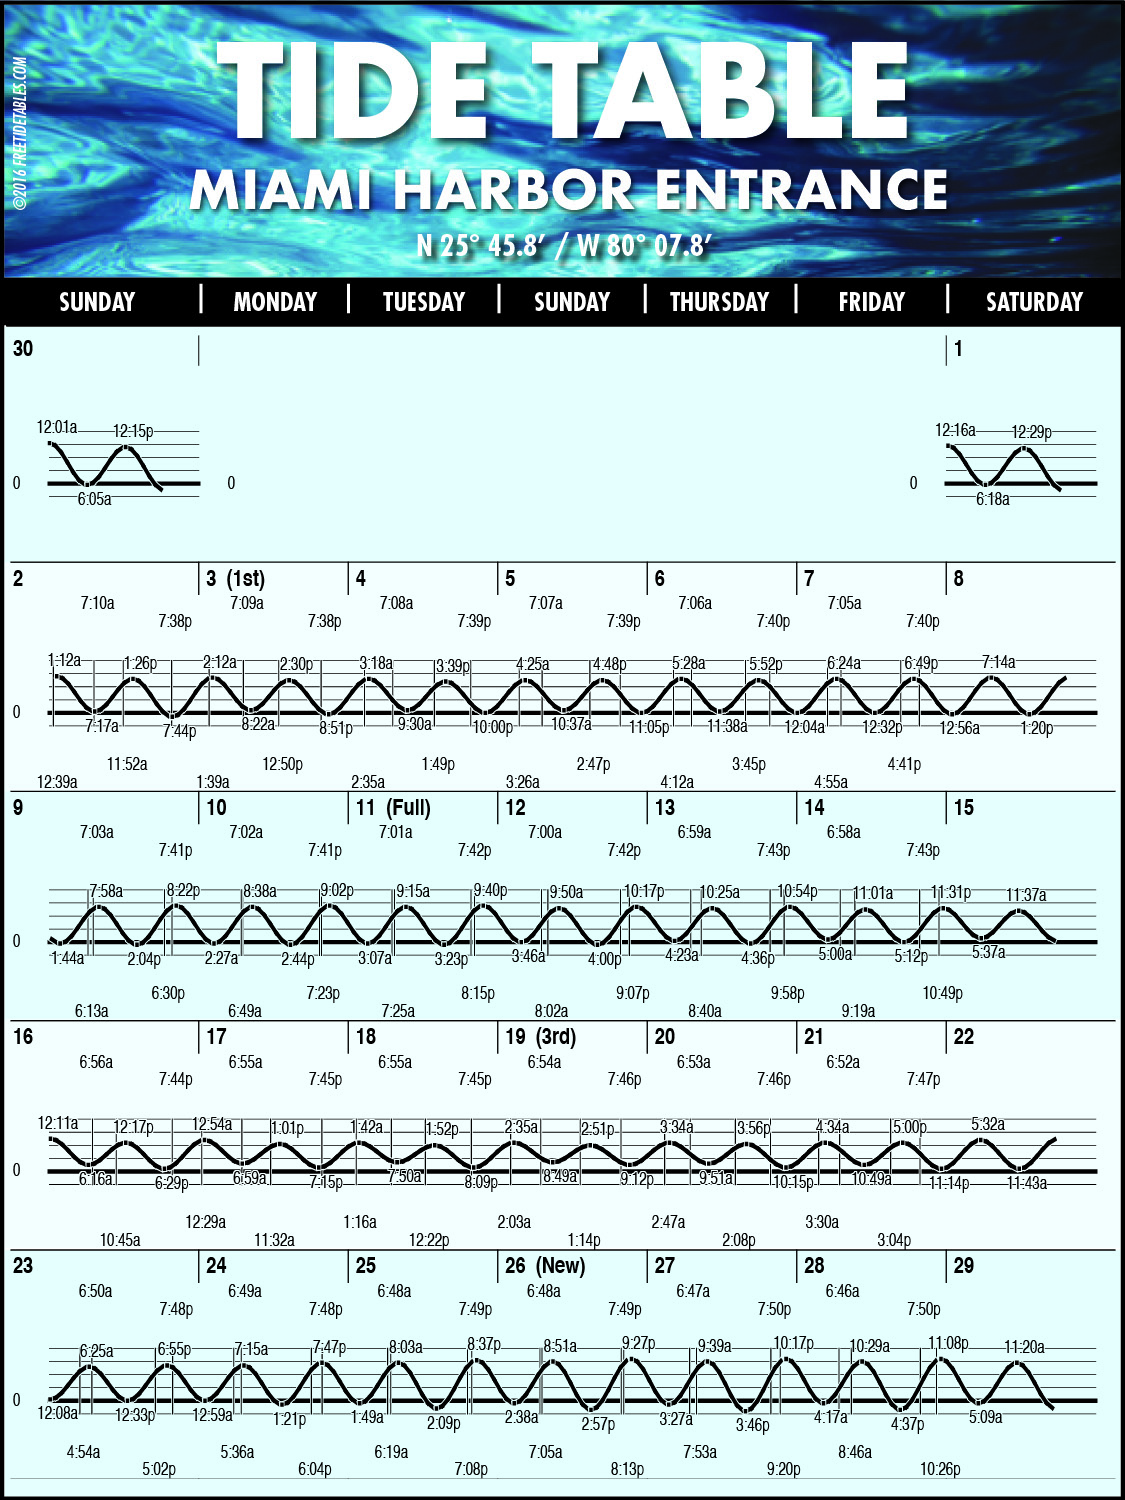 Beaufort river tide chart image collections free any chart examples popponesset tide chart choice image free any chart examples hudson river tide charts choice image free nvjuhfo Gallery